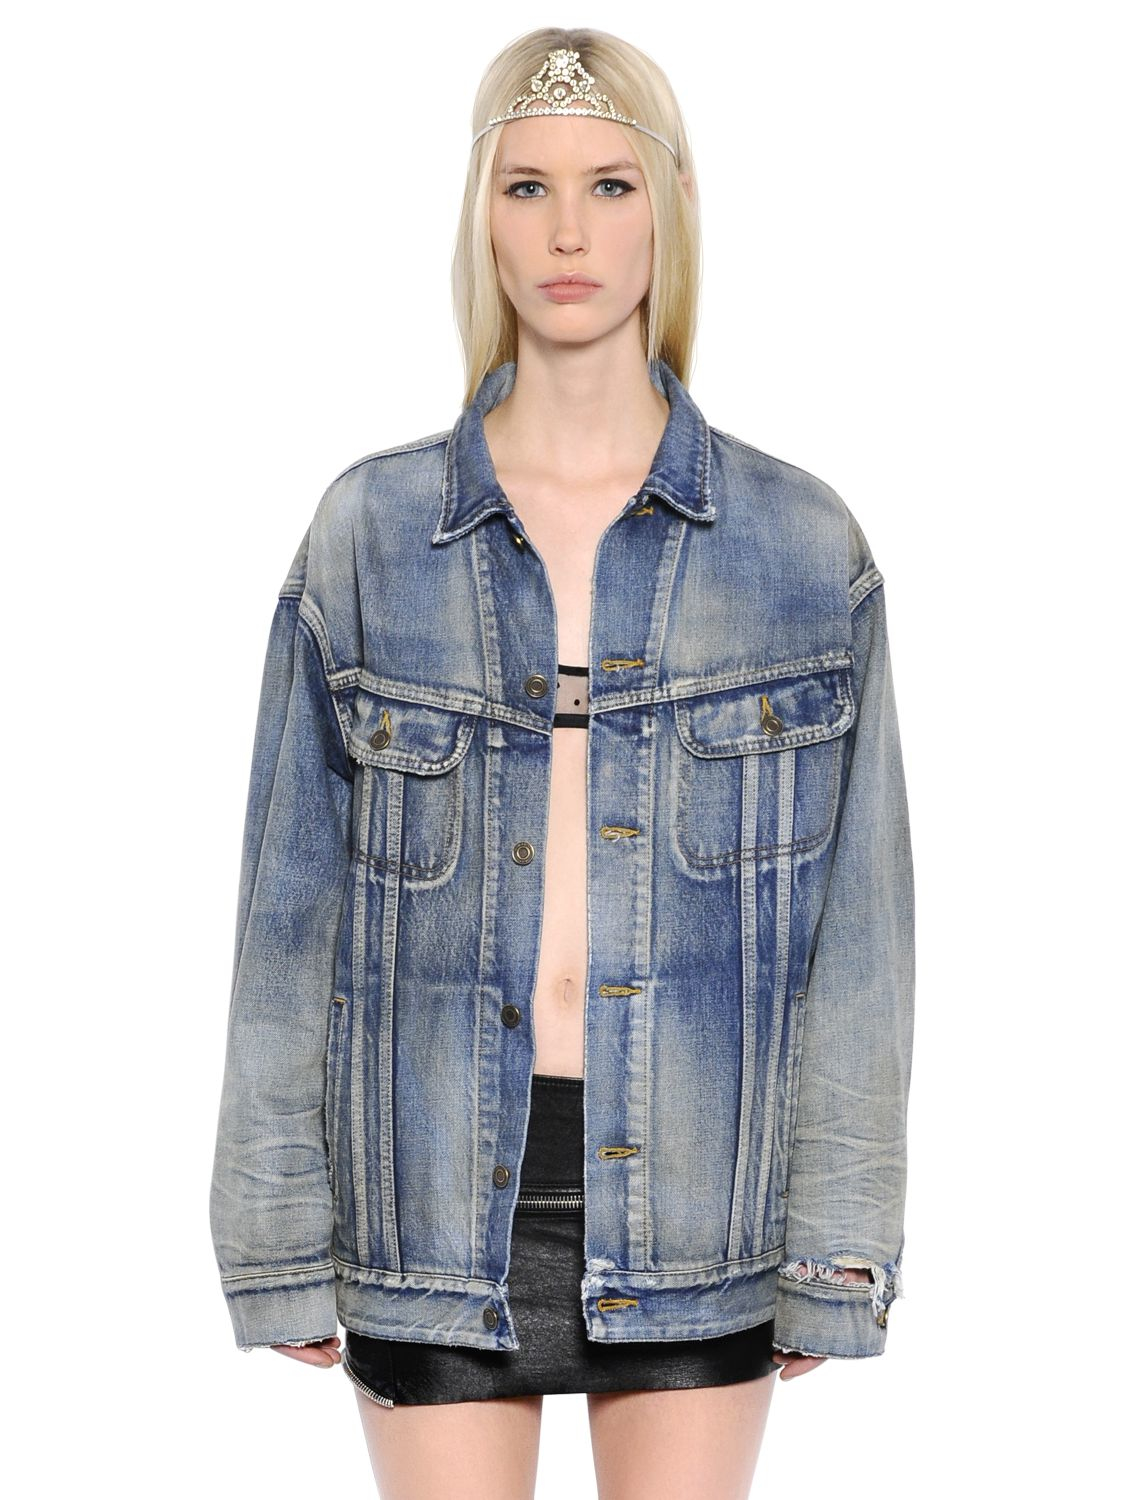 Womens Embroidered Cotton Chambray Shirt Saint Laurent Best Deals With Credit Card Cheap Price XKSdtS